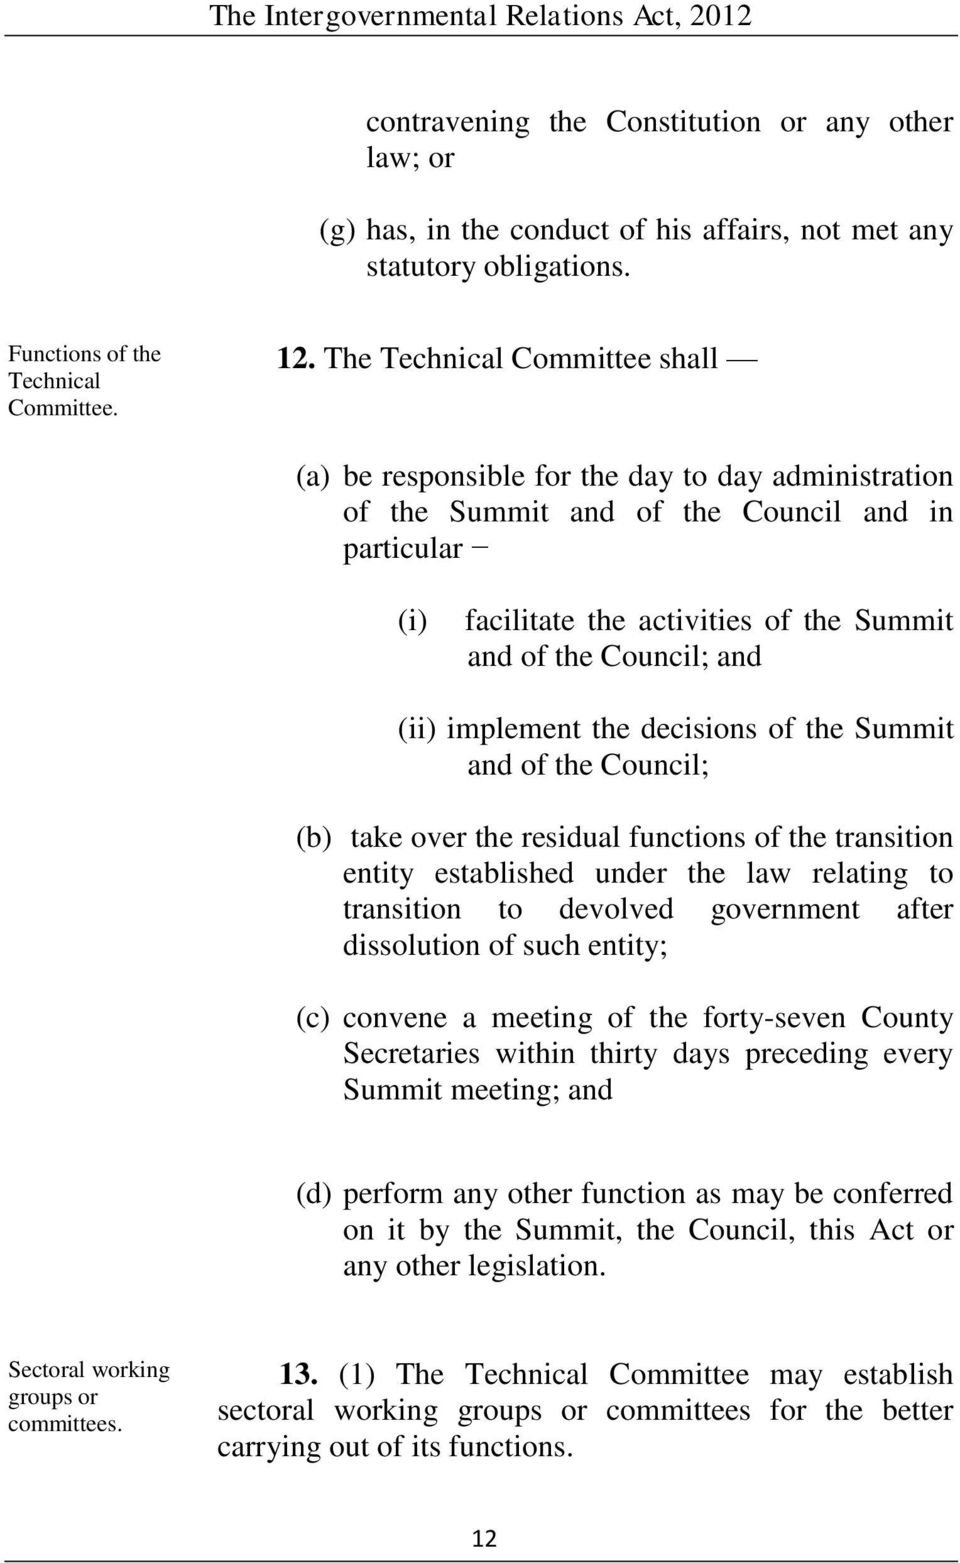 (ii) implement the decisions of the Summit and of the Council; take over the residual functions of the transition entity established under the law relating to transition to devolved government after